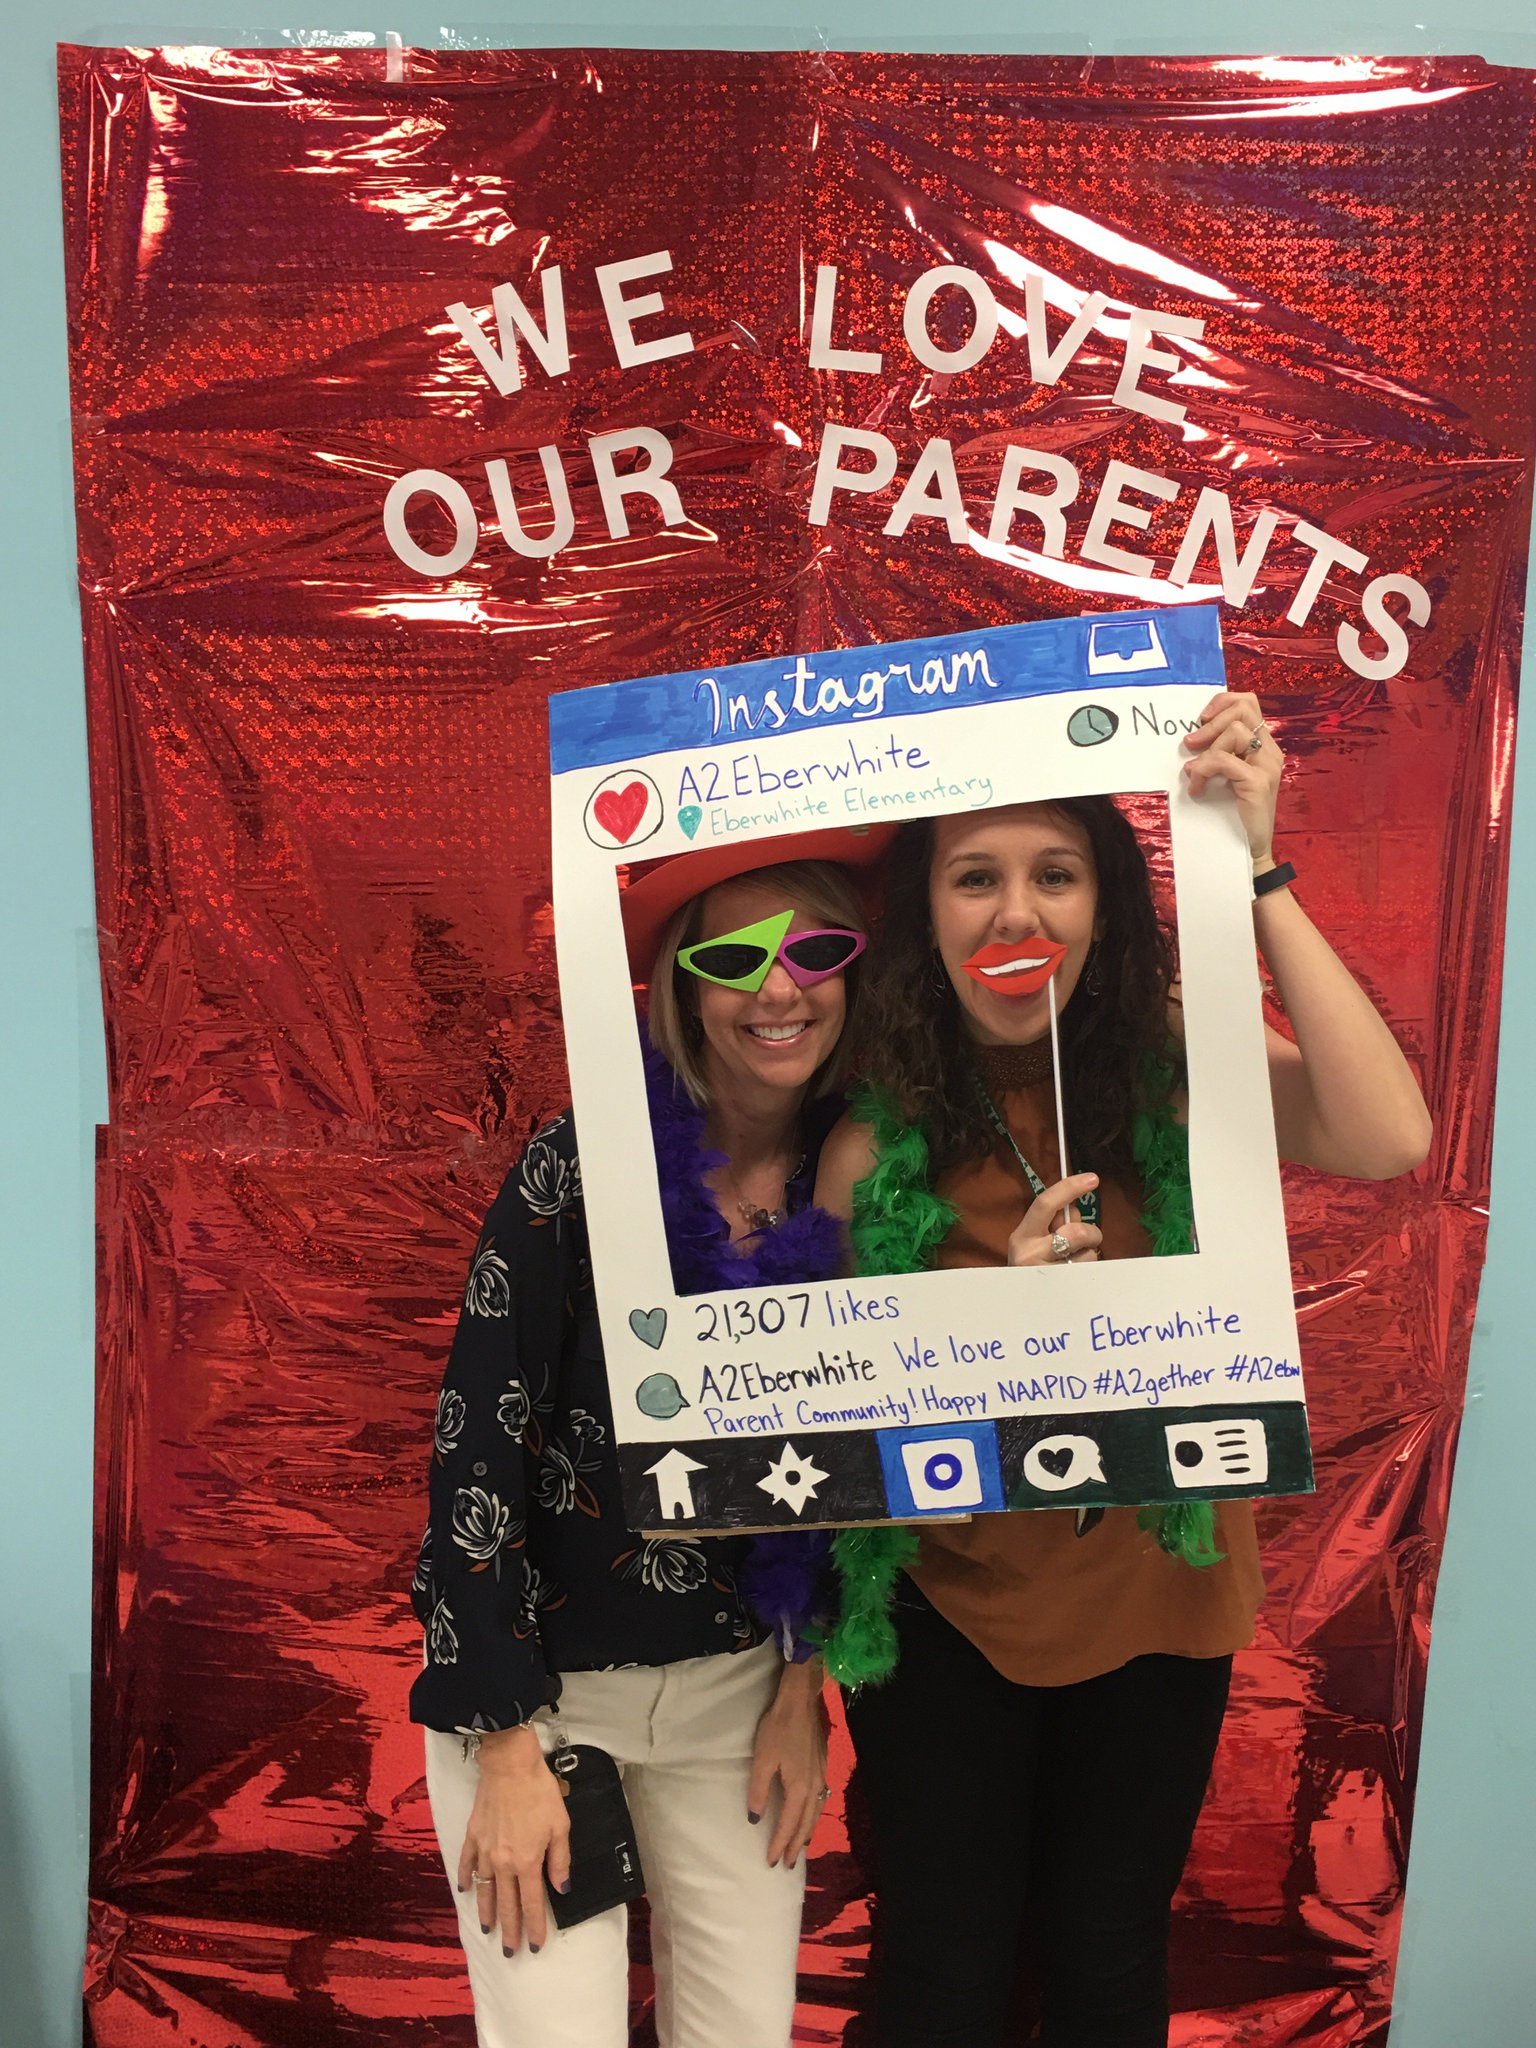 Having fun with our NAAPID photobooth #a2gether #a2ebw https://t.co/j4c26NKkRJ